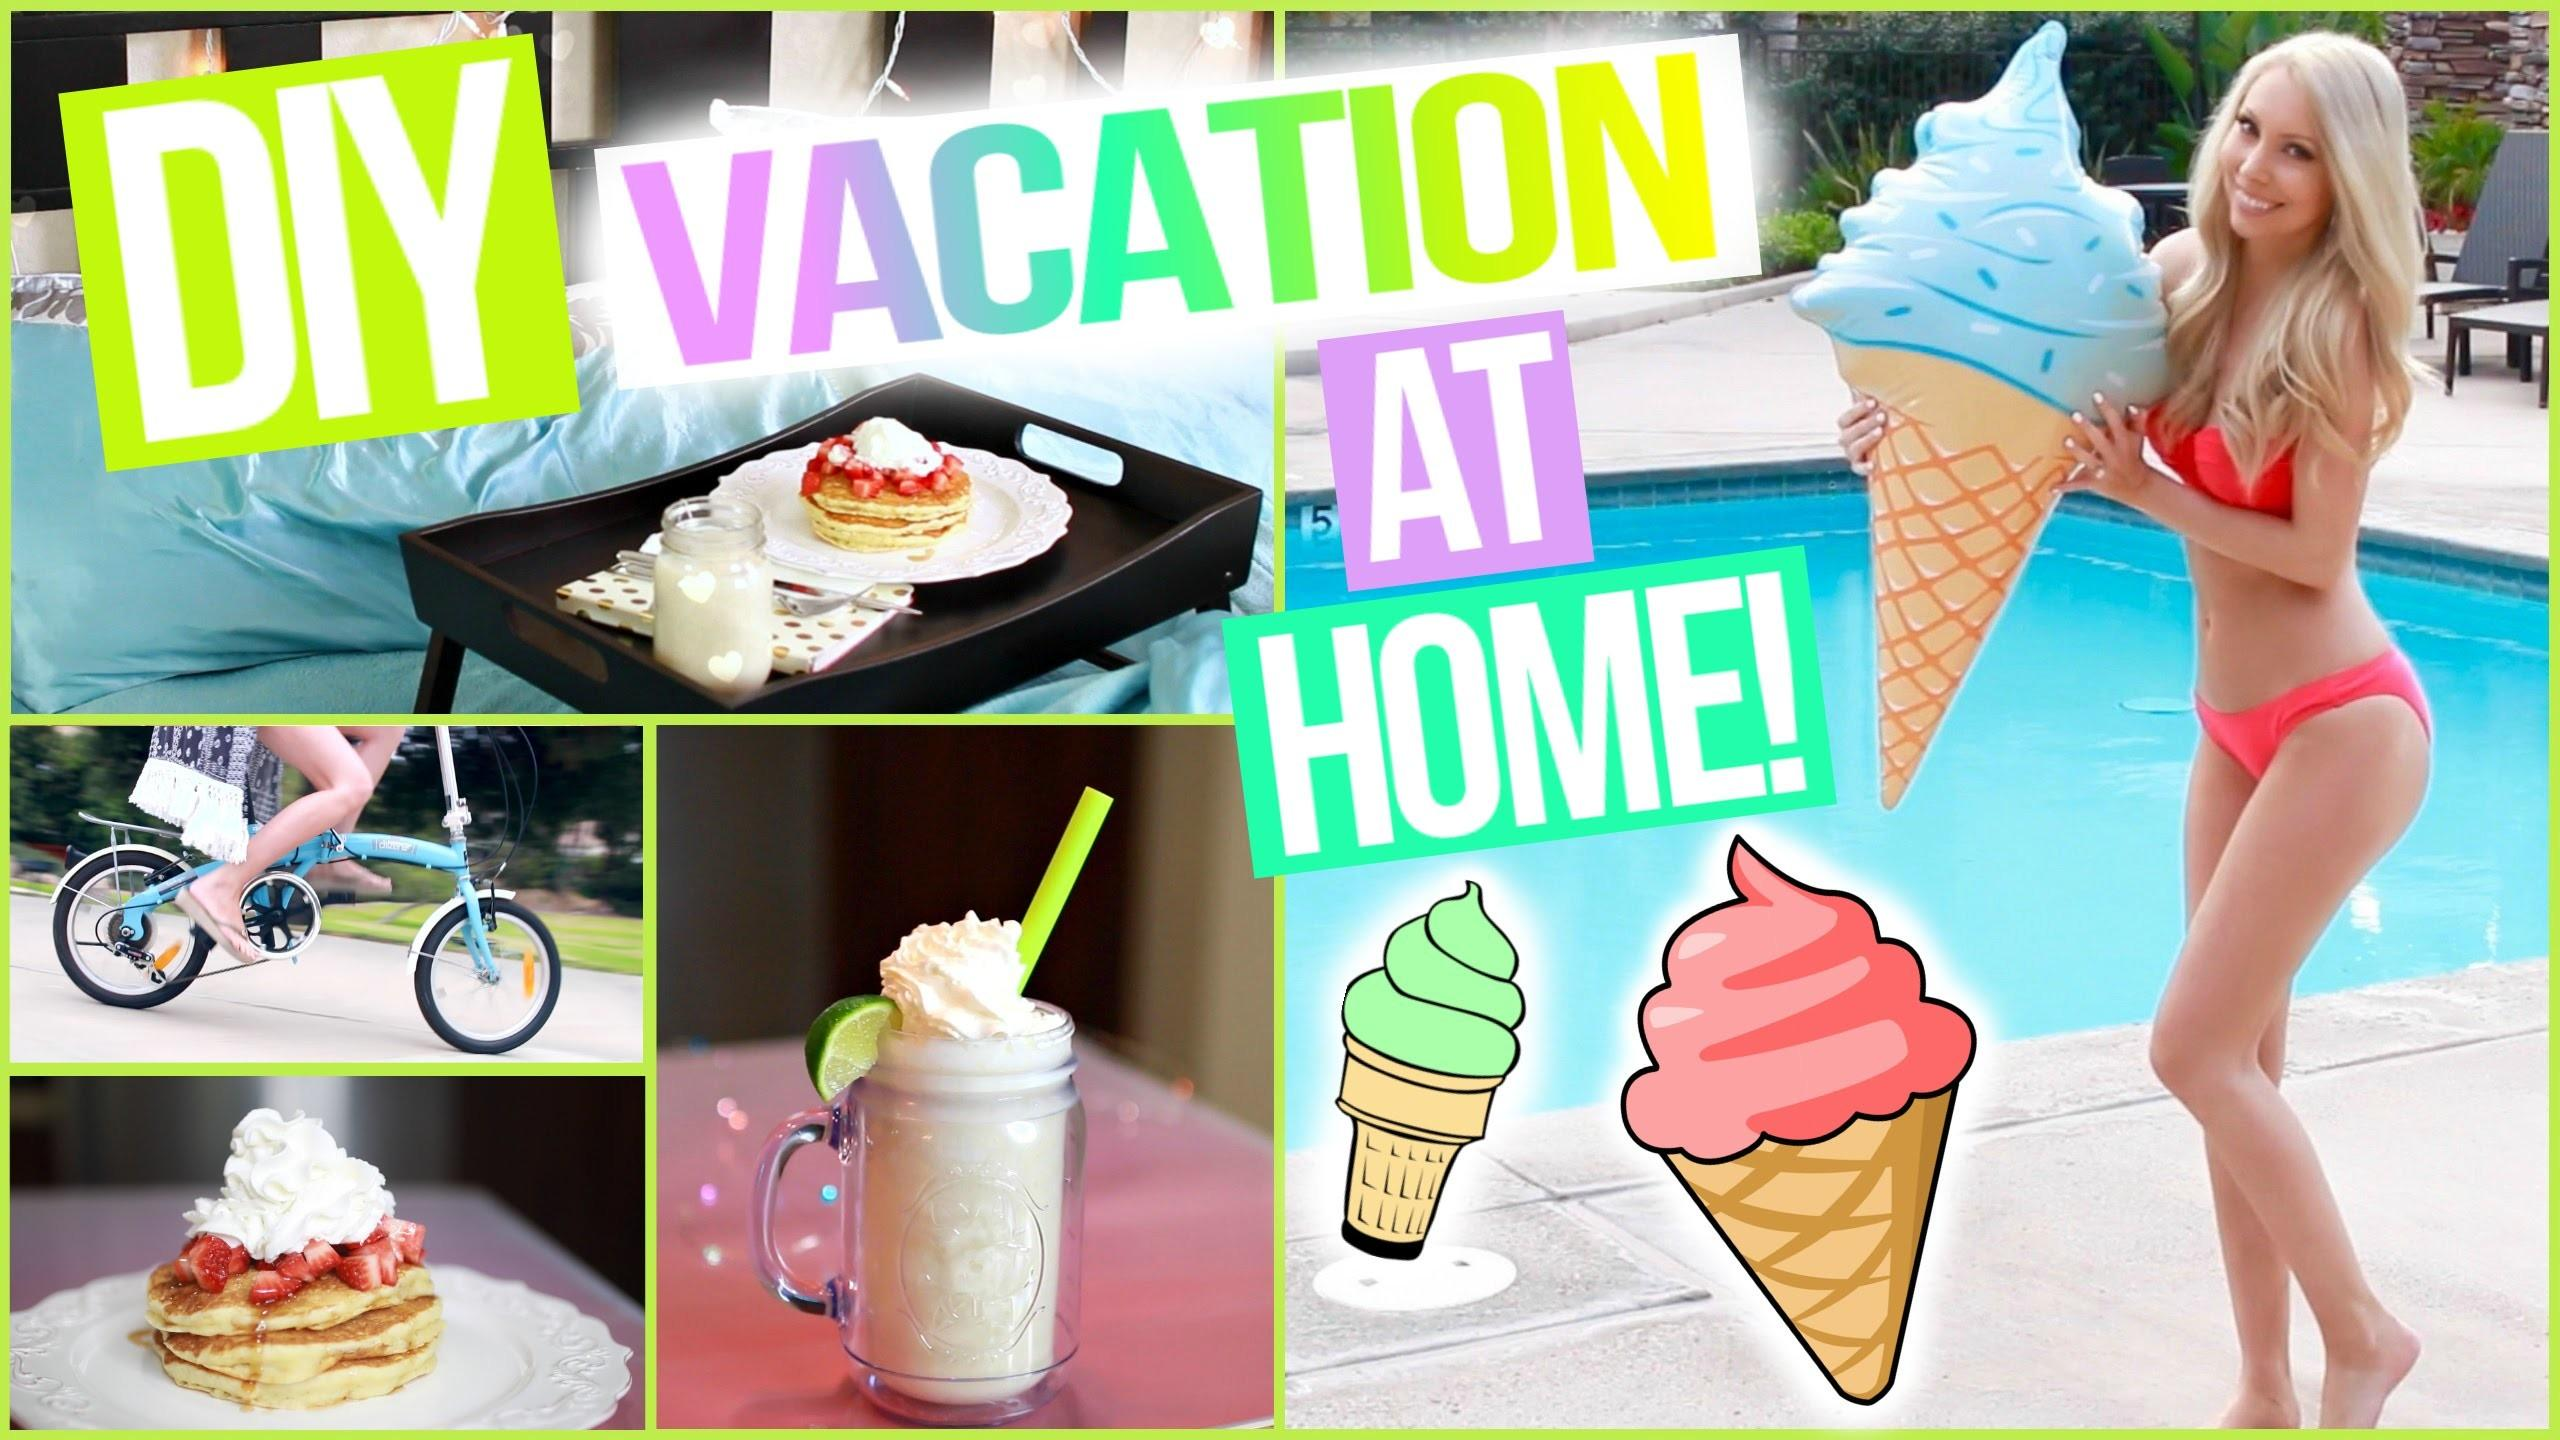 Diy Vacation Home Awesome Staycation Ideas Video